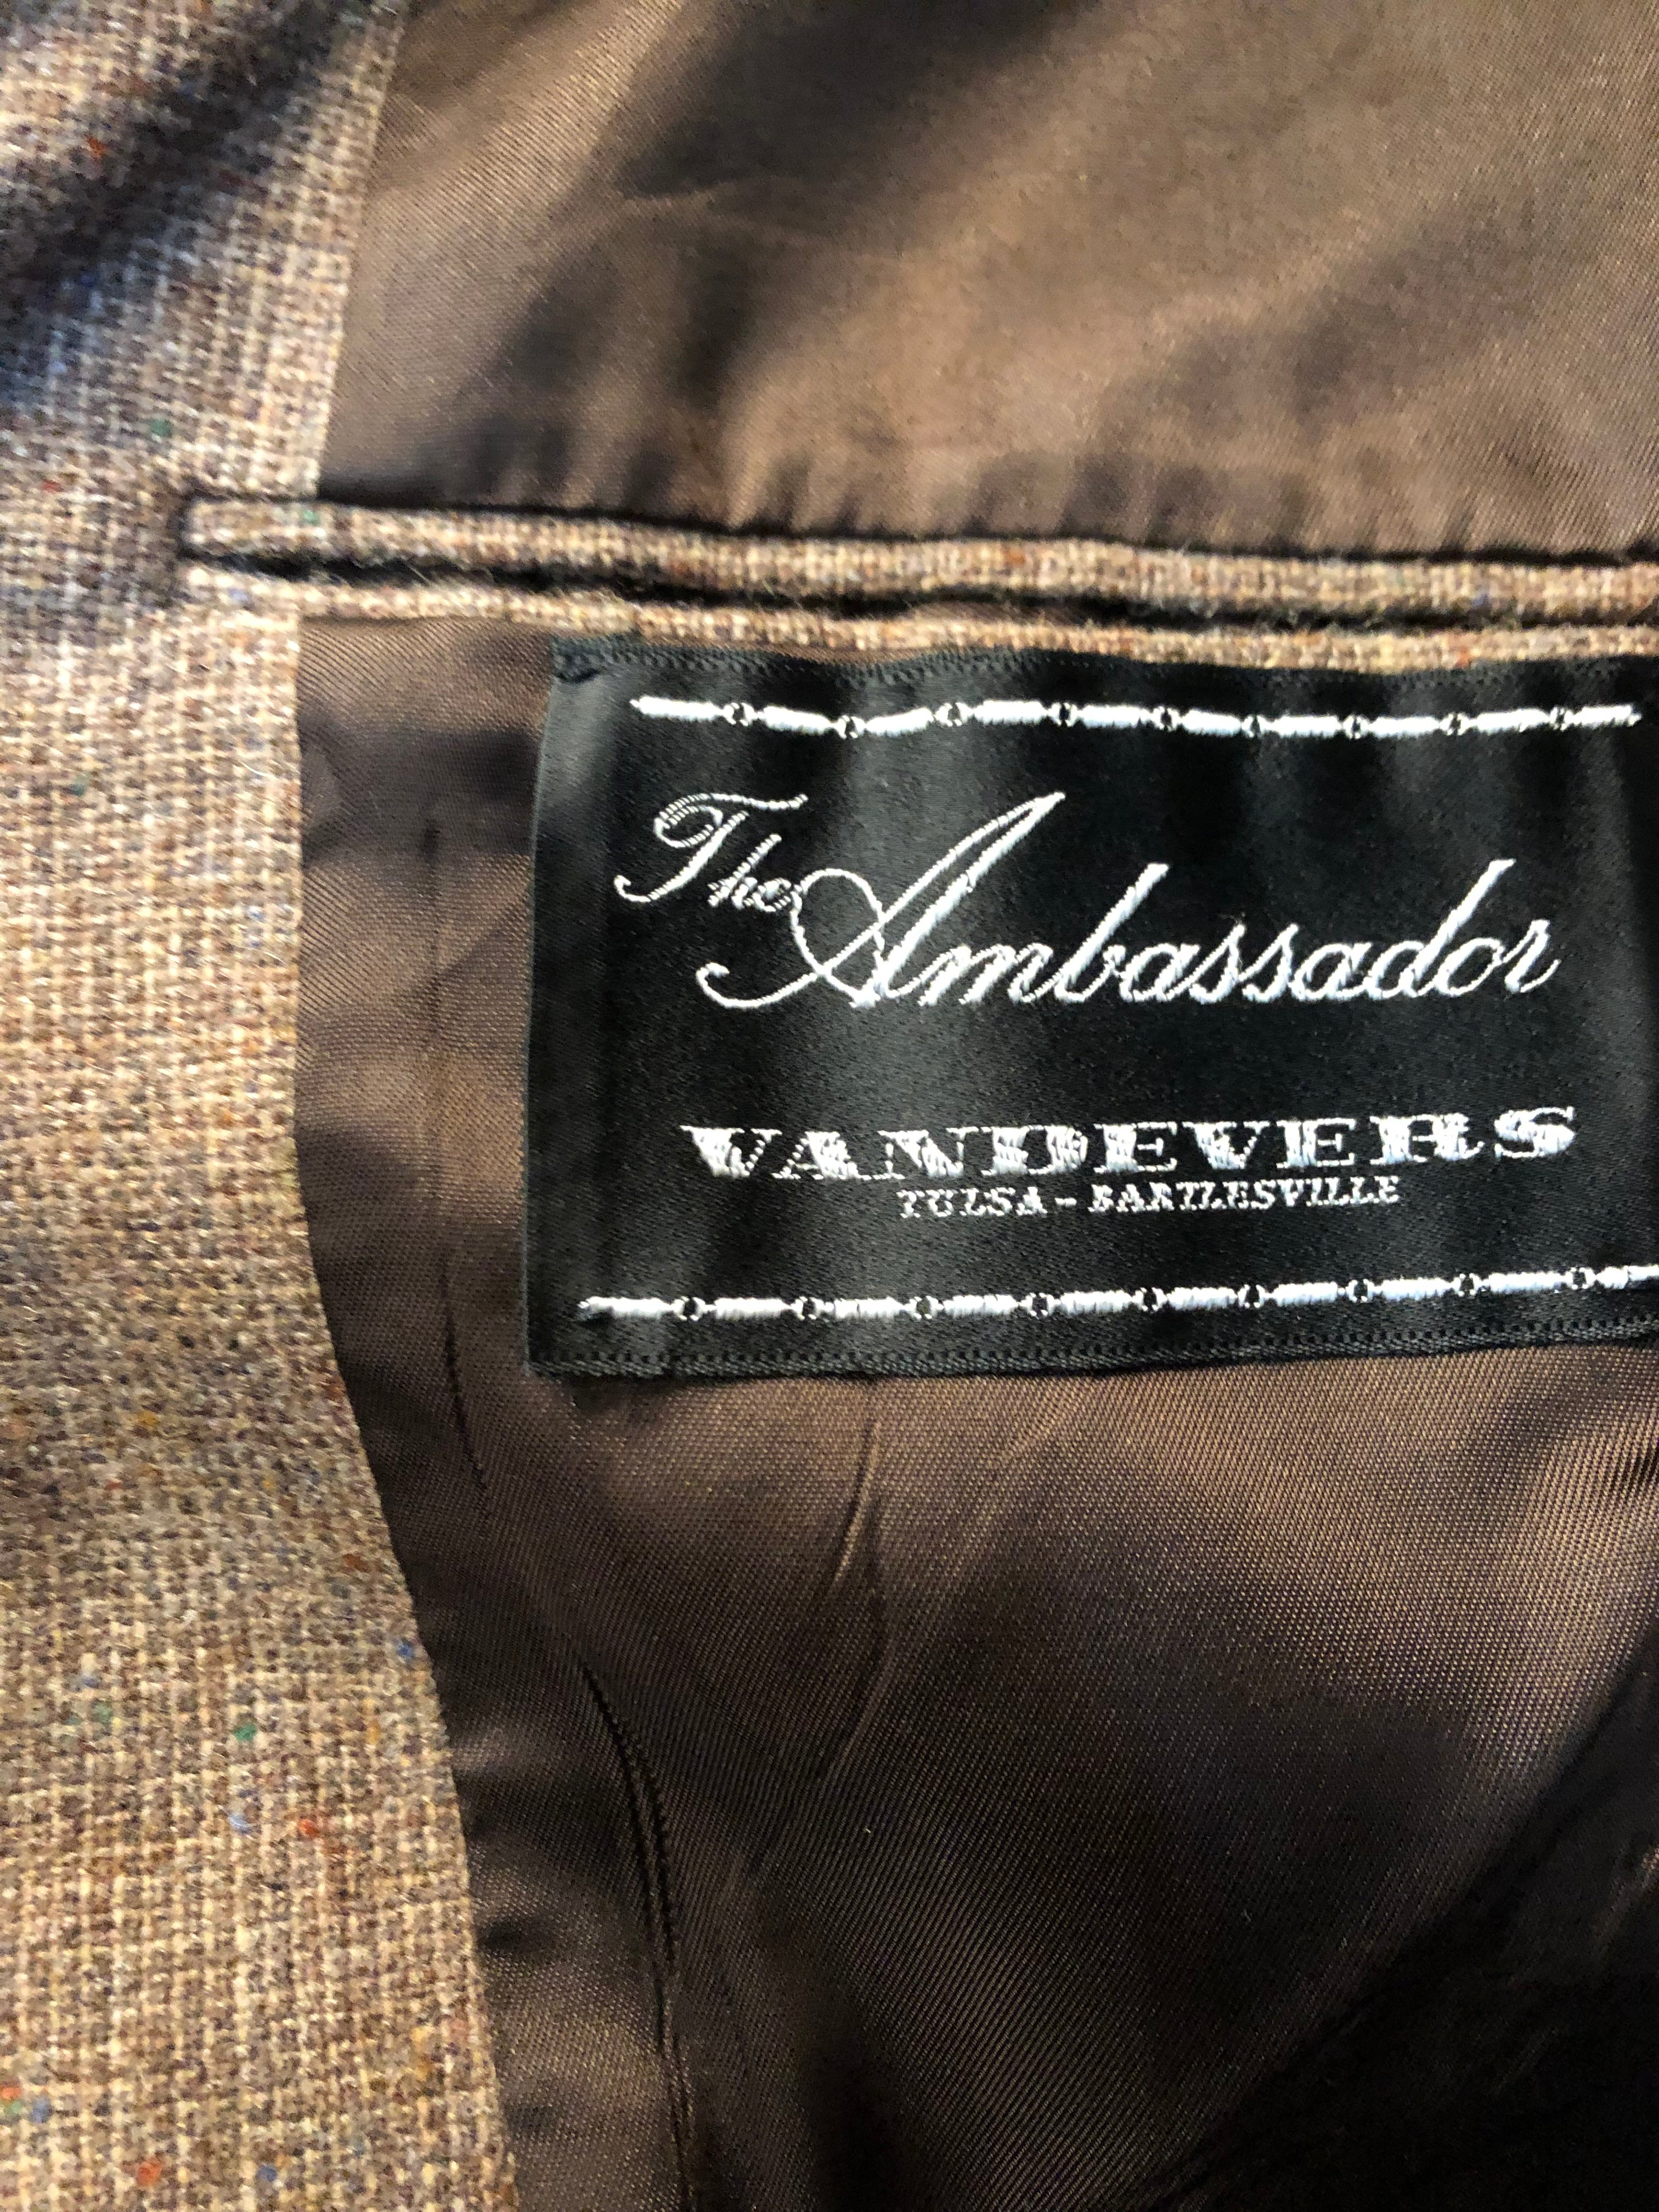 Men's Blazers & Sportcoats: Ambassador Chocolate Brown (1950's-1960's)